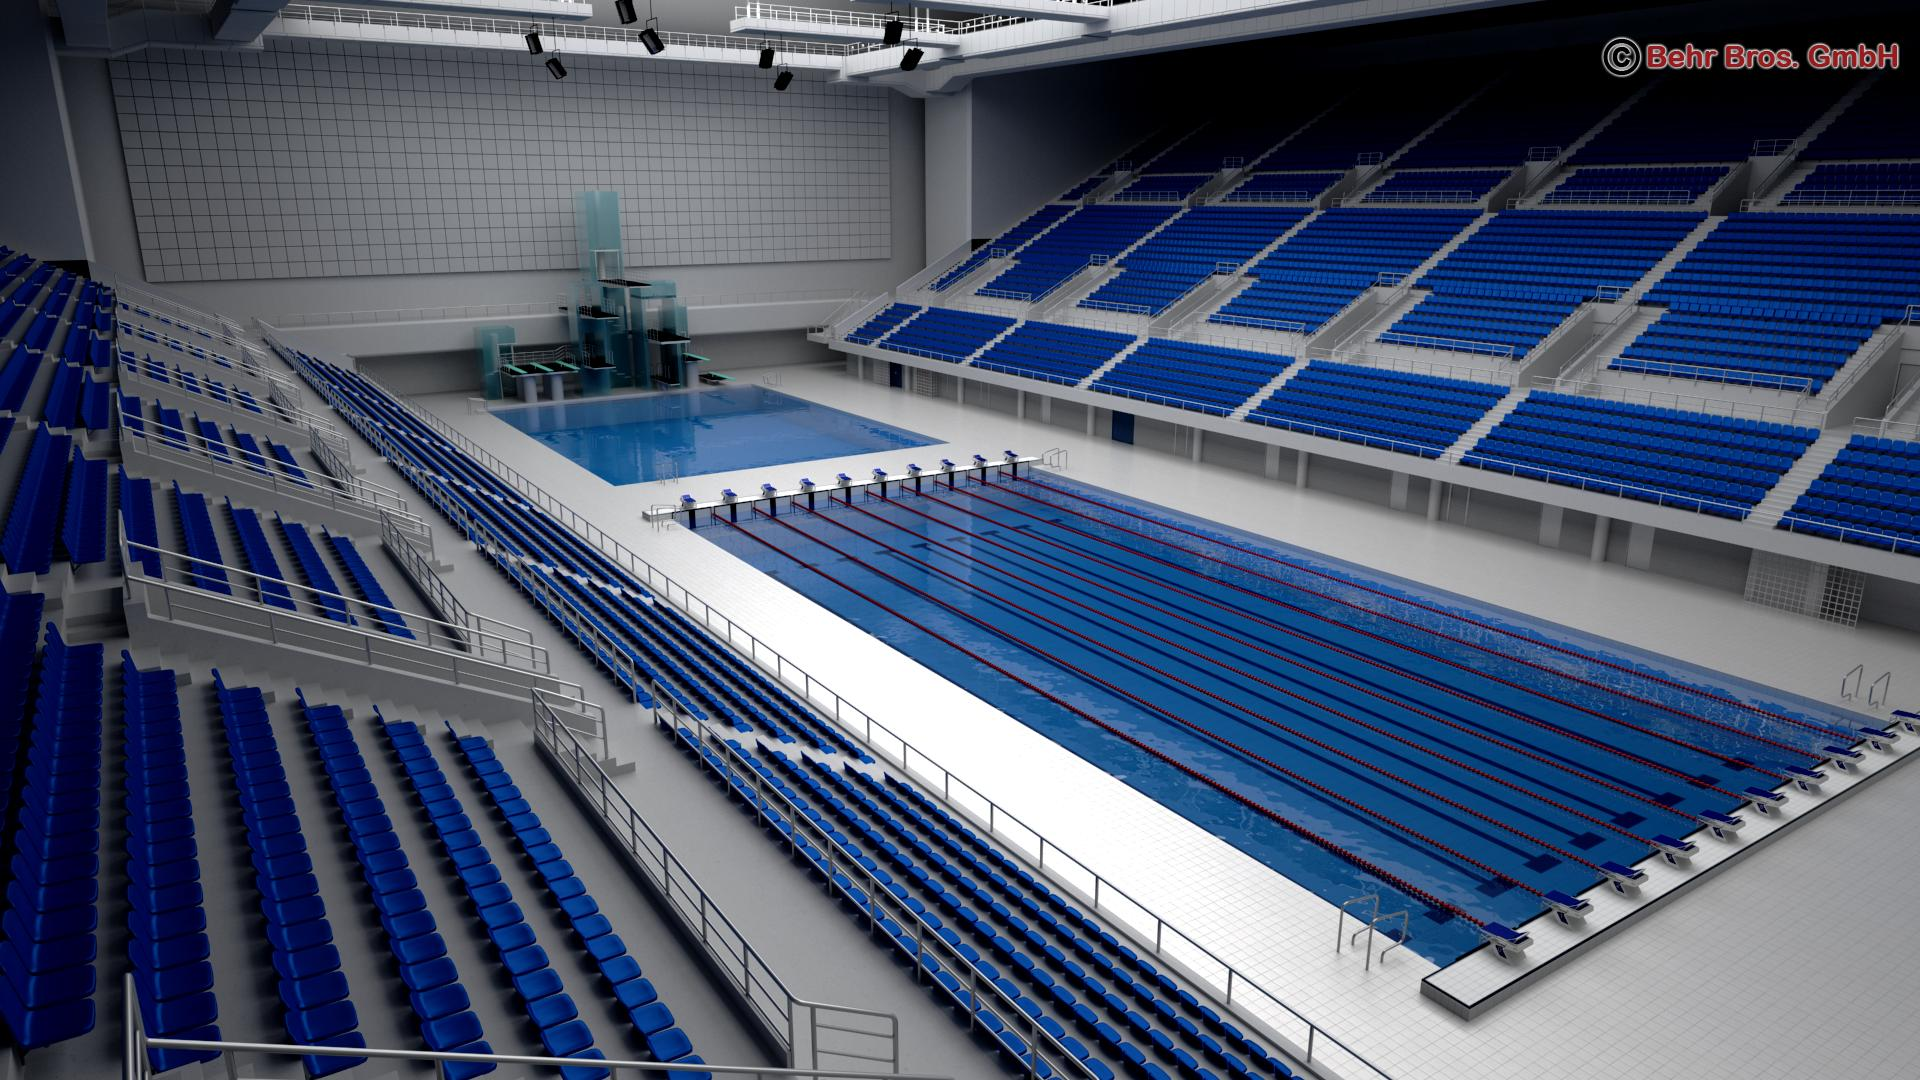 Swim Stadium 3d model 3ds max fbx c4d lwo lws lw ma mb obj 204429